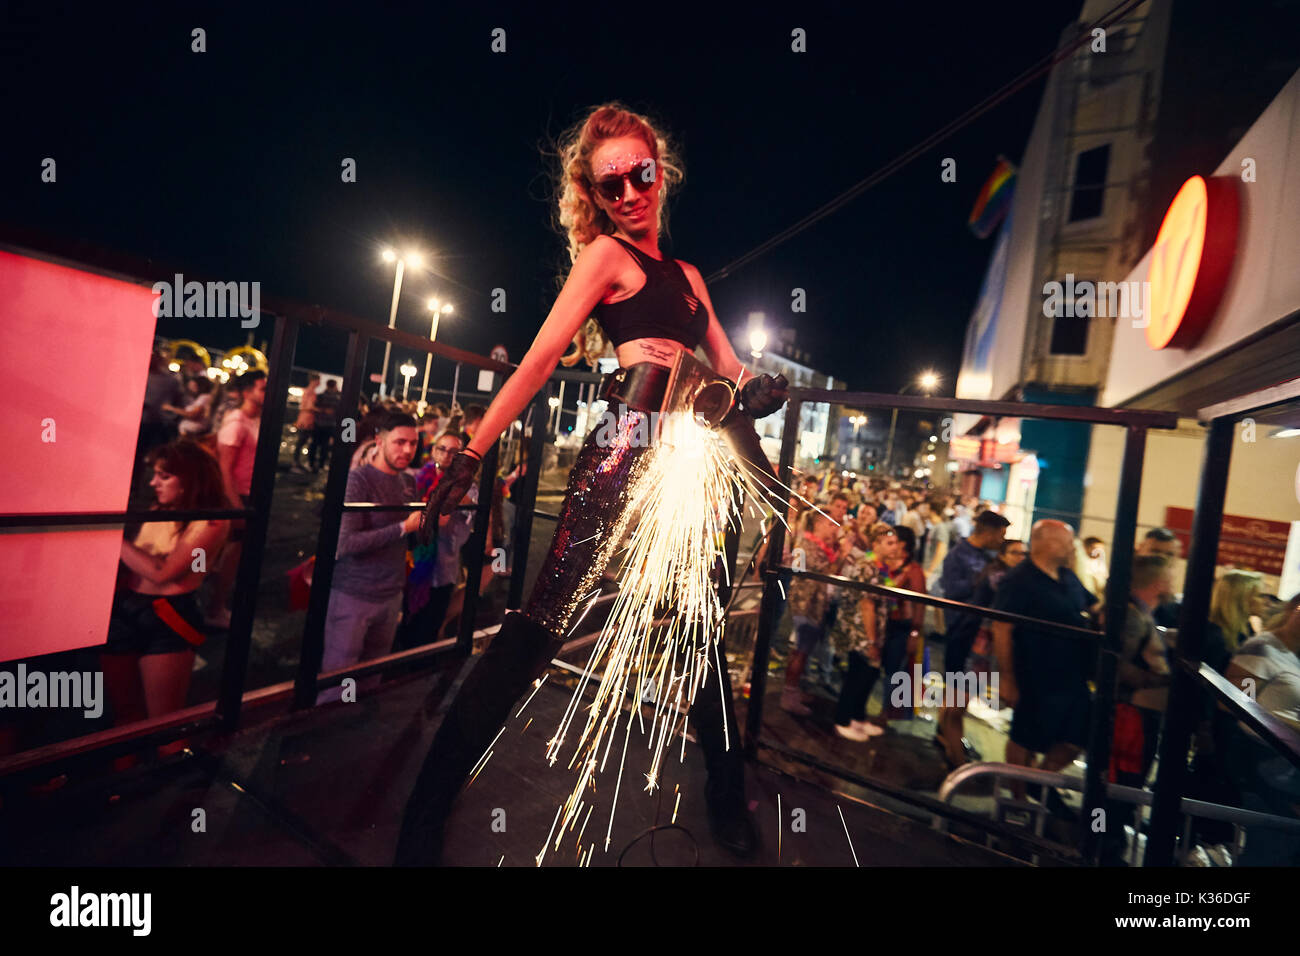 Brighton/ United Kingdom - AUGUST 05 2017: Brighton Gay pride weekend opening party held at St James Street. A female performer uses an angle grinder on stage - Stock Image